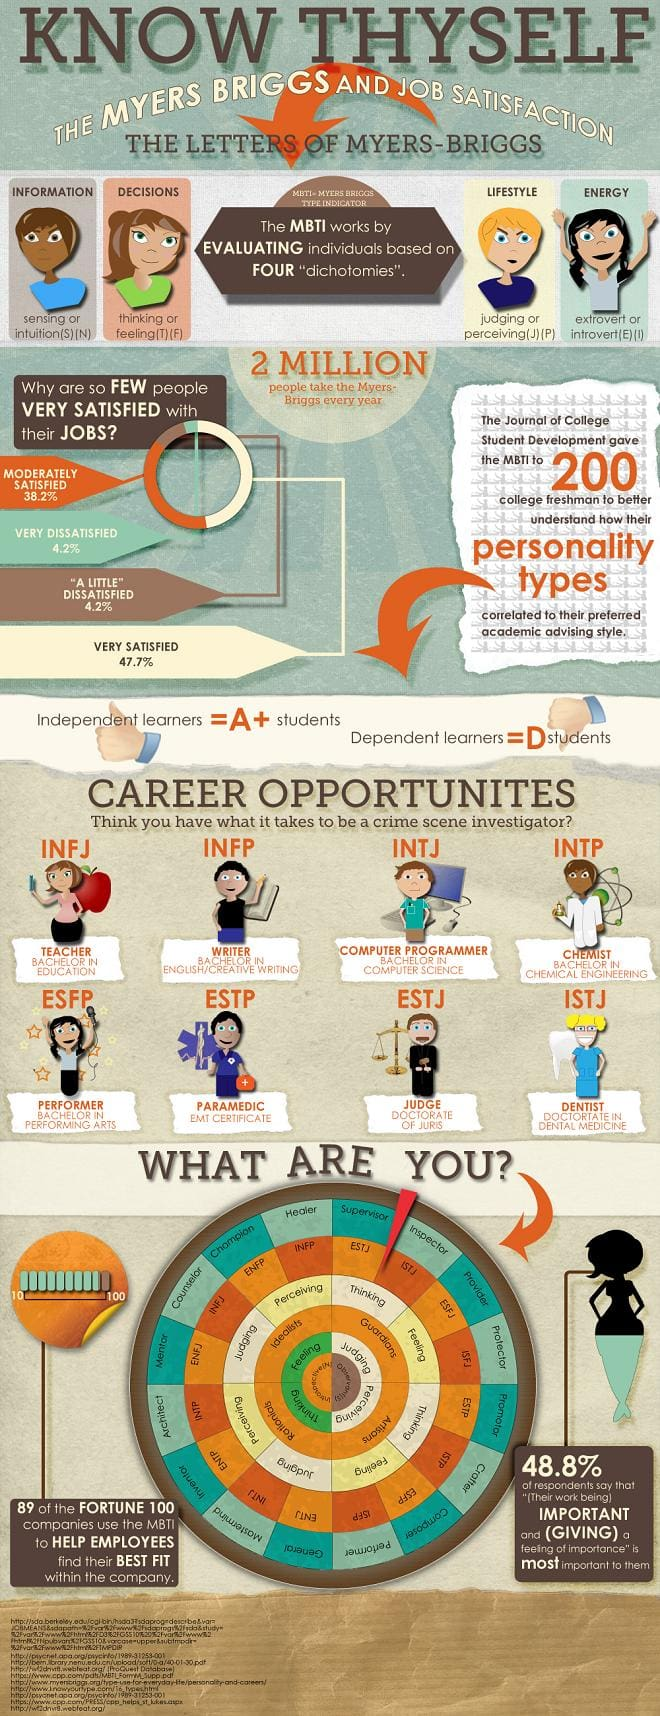 myers briggs determines your career